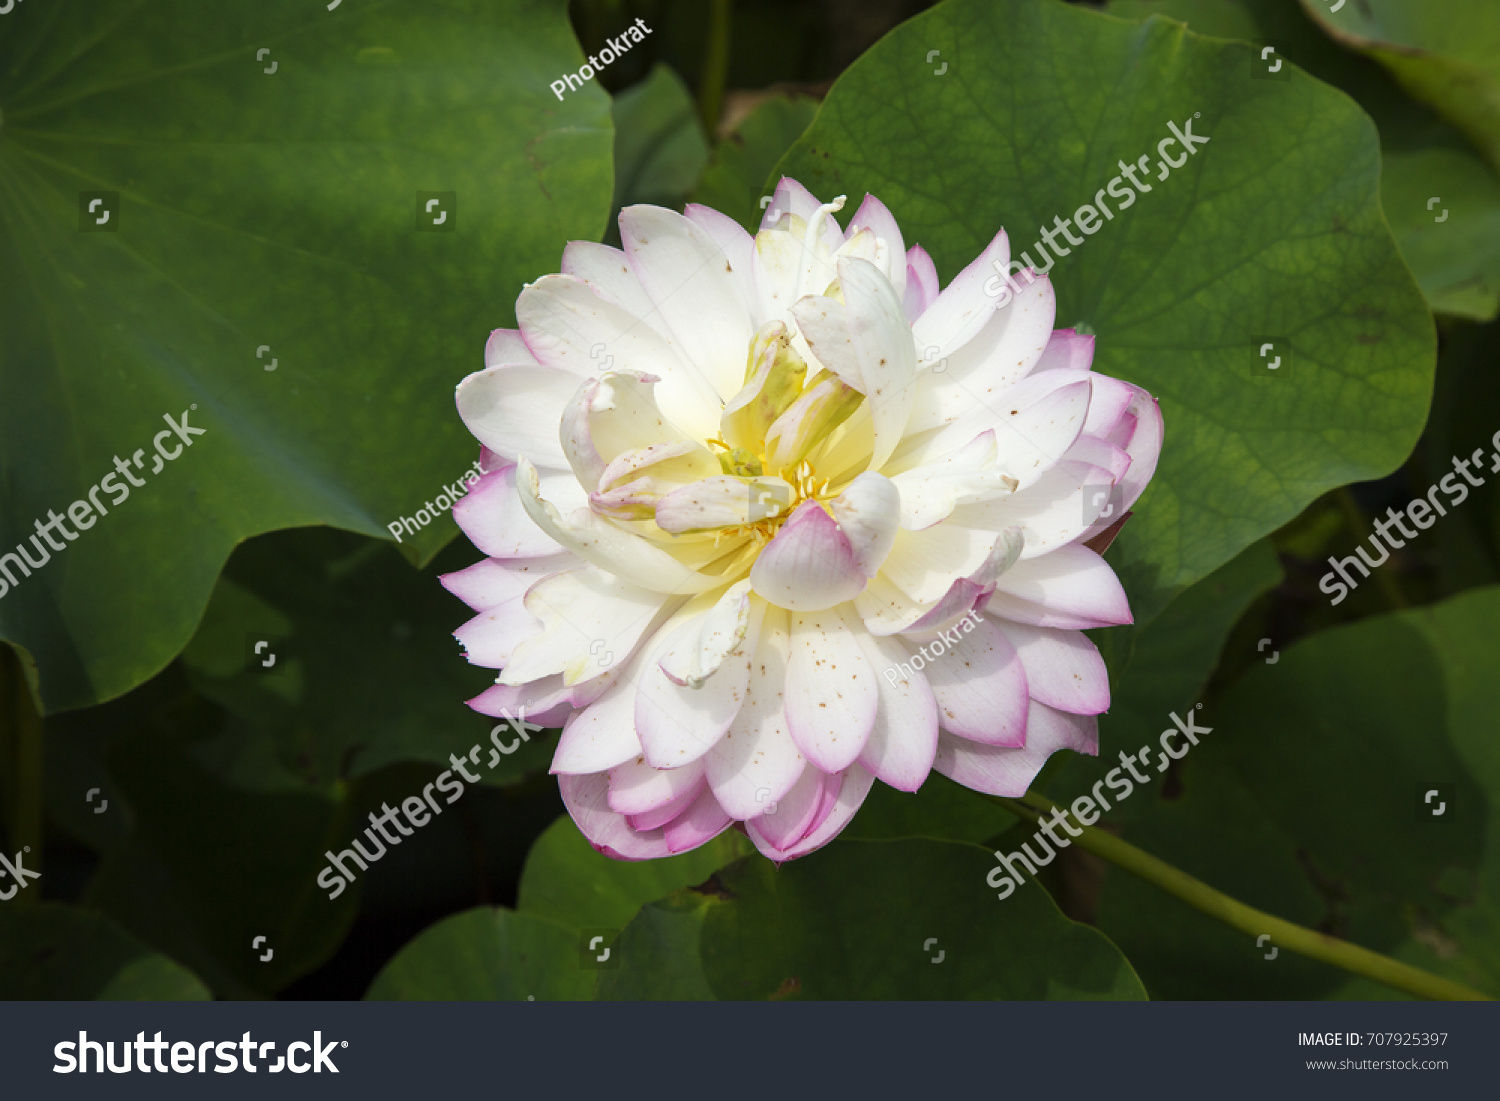 White purple edges lotus flower foreground stock photo royalty free white purple edges lotus flower foreground stock photo royalty free 707925397 shutterstock mightylinksfo